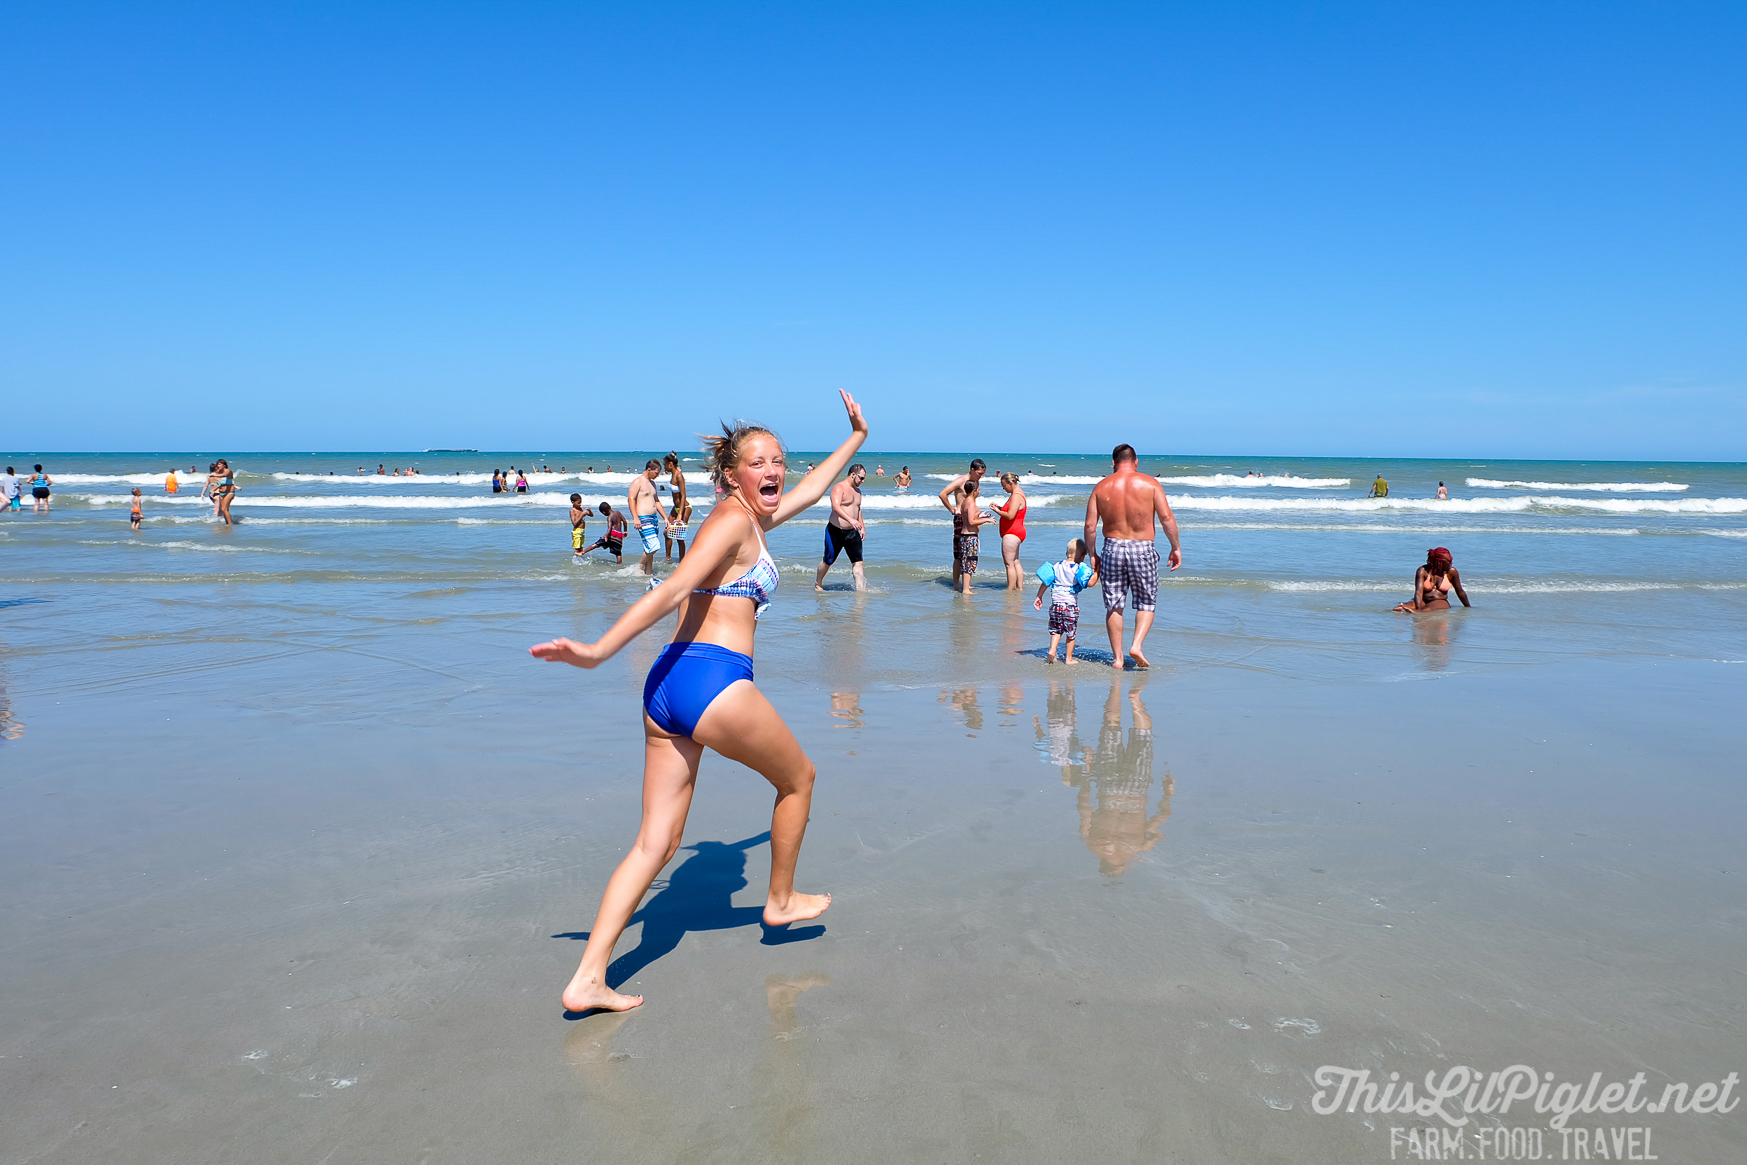 Things to do at Cocoa Beach on Florida's Space Coast - Things to do for teens via @thislilpiglet